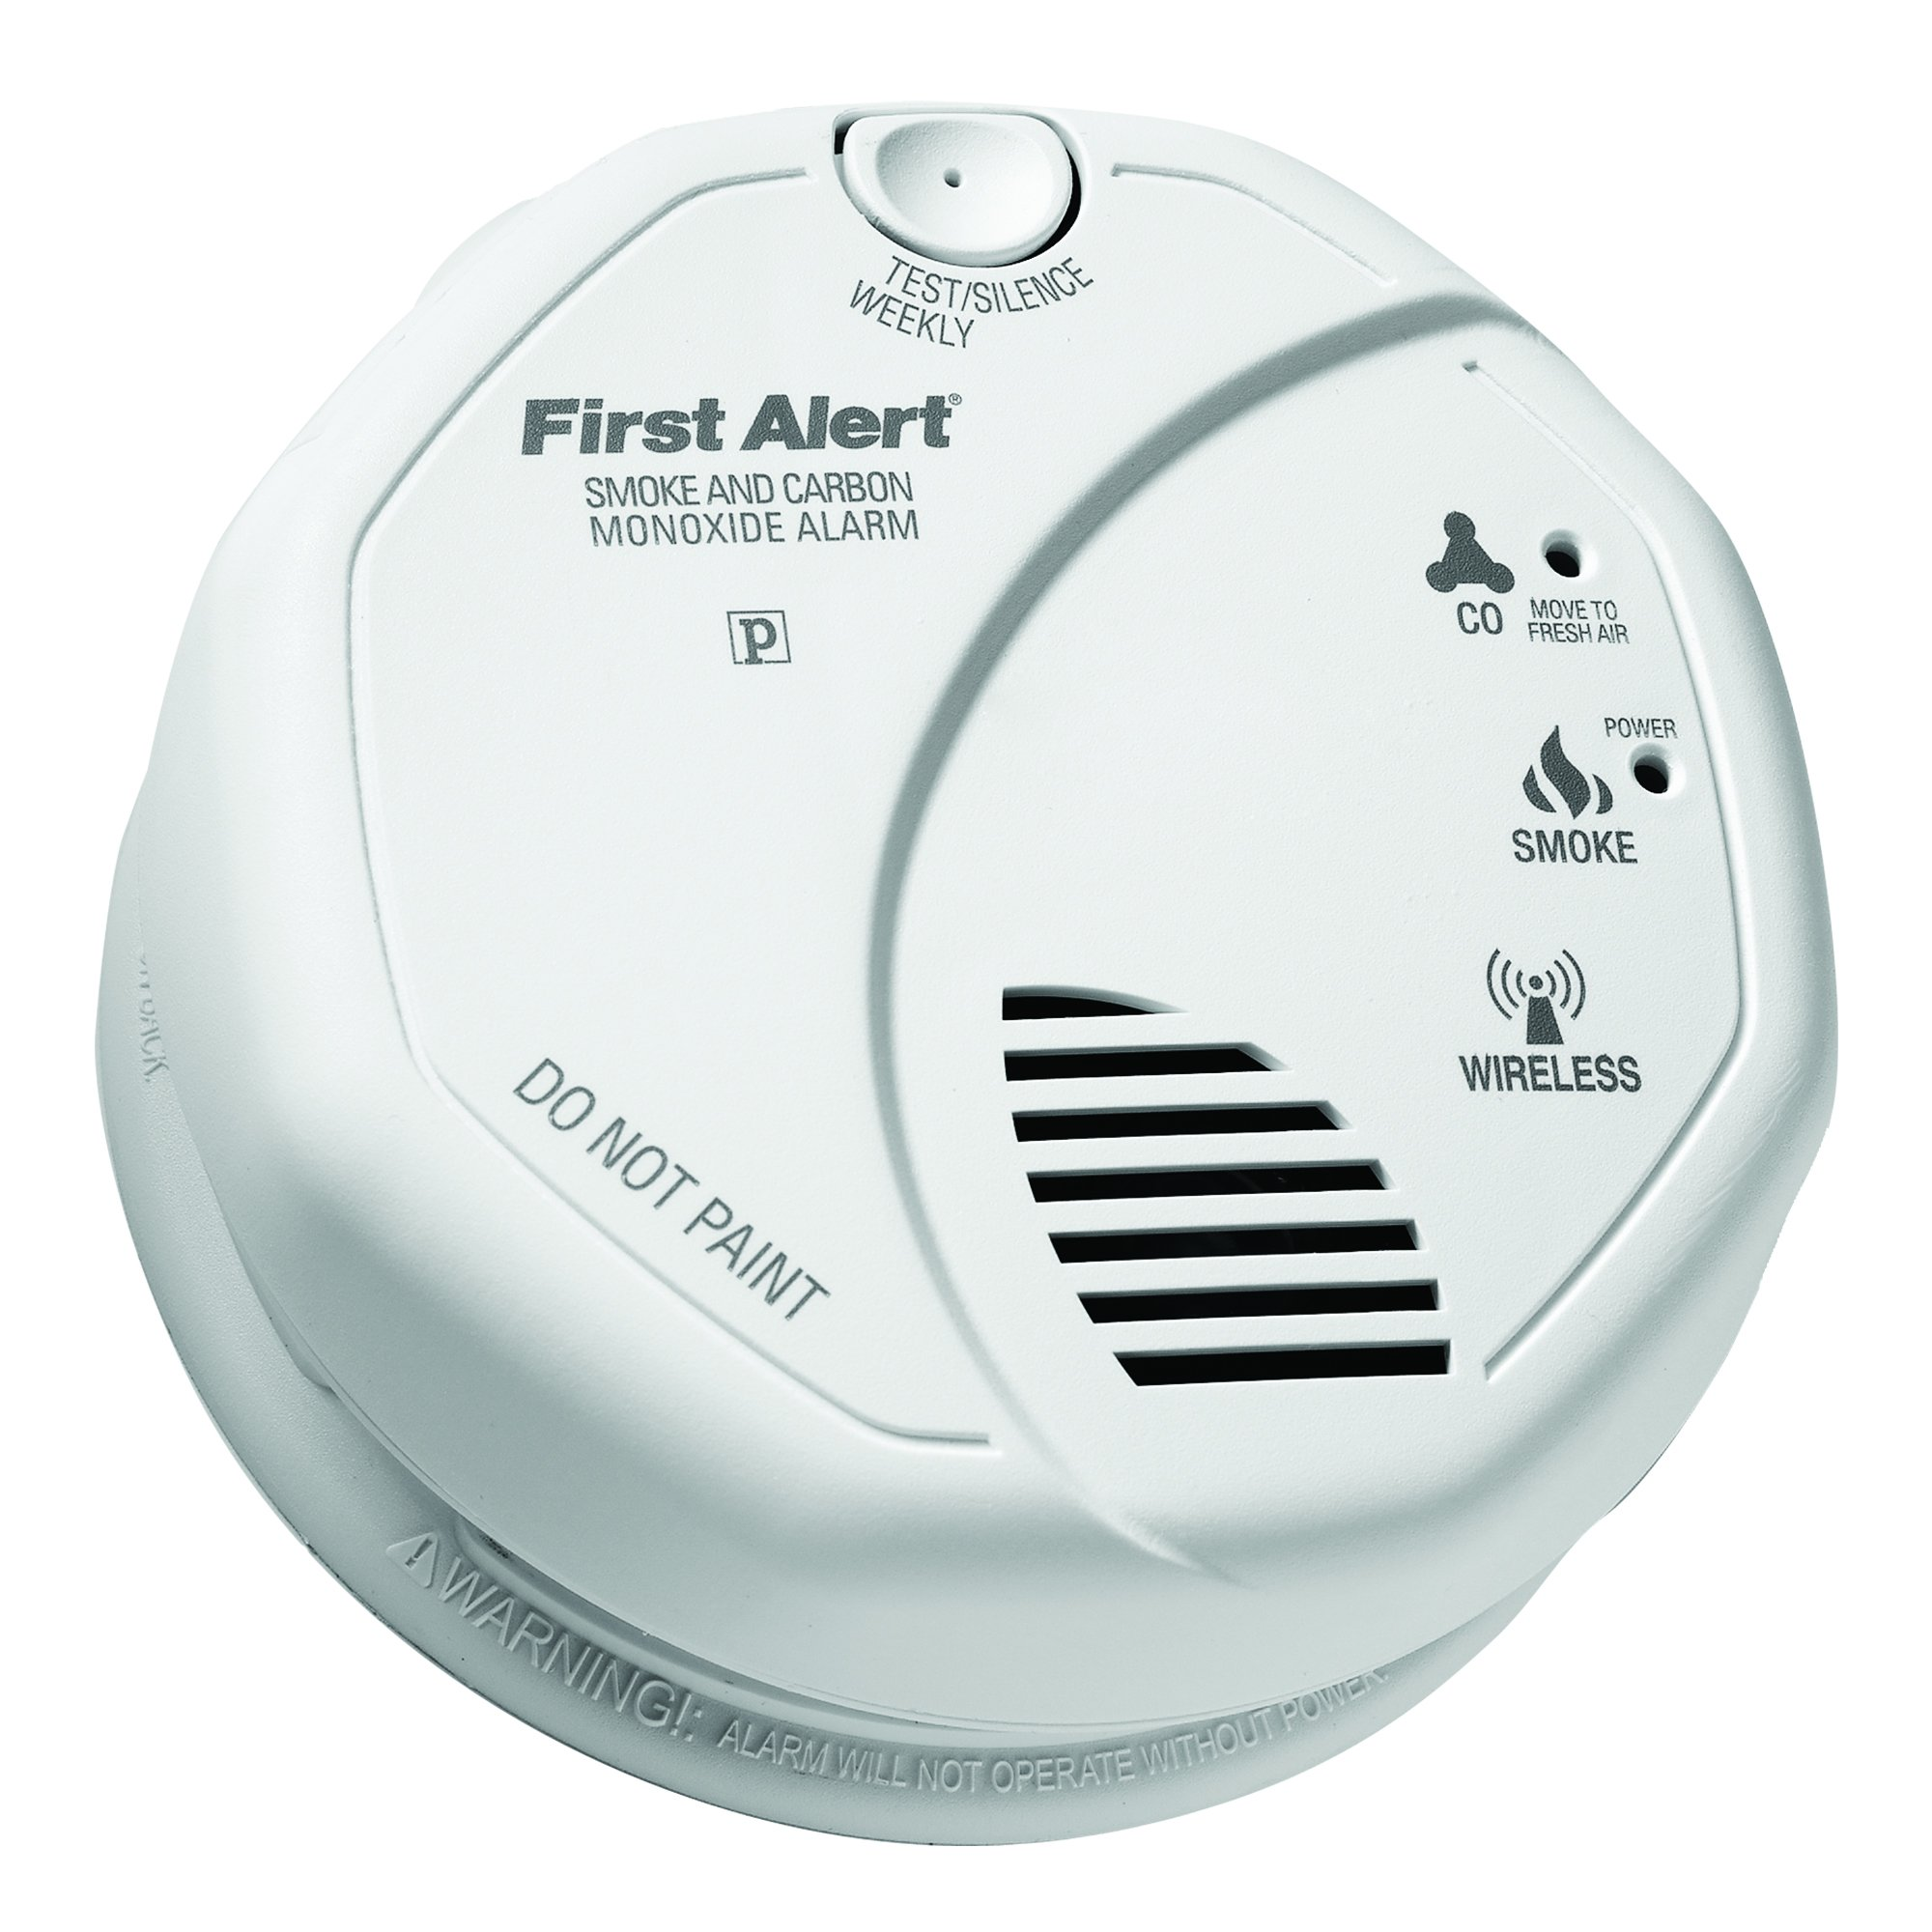 First Alert 2-in-1 Z-Wave Smoke Detector & Carbon Monoxide Alarm